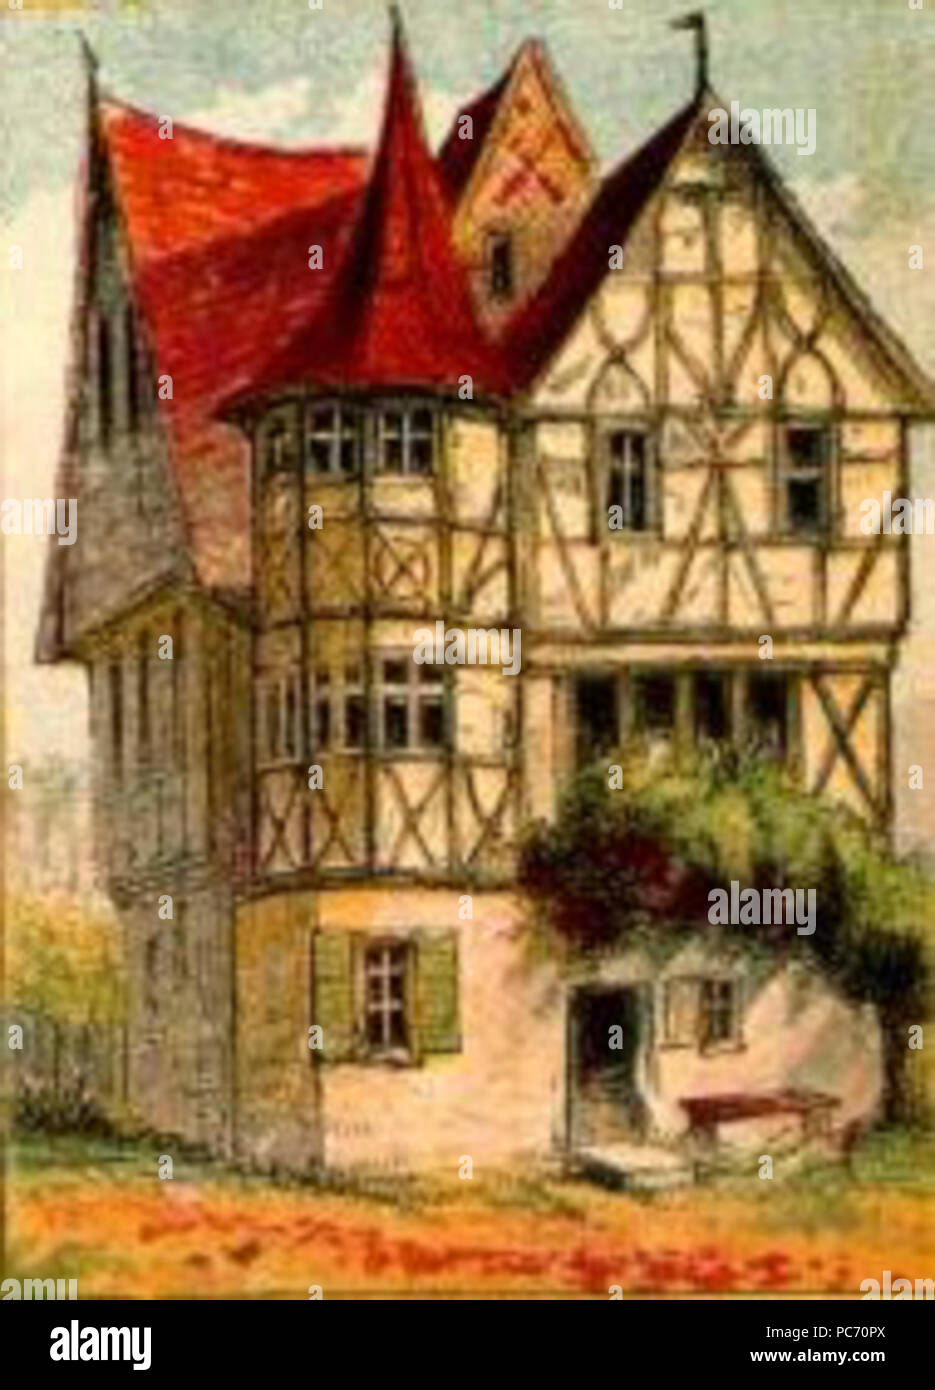 Mansion Drawing: Tudor House Drawing Stock Photos & Tudor House Drawing